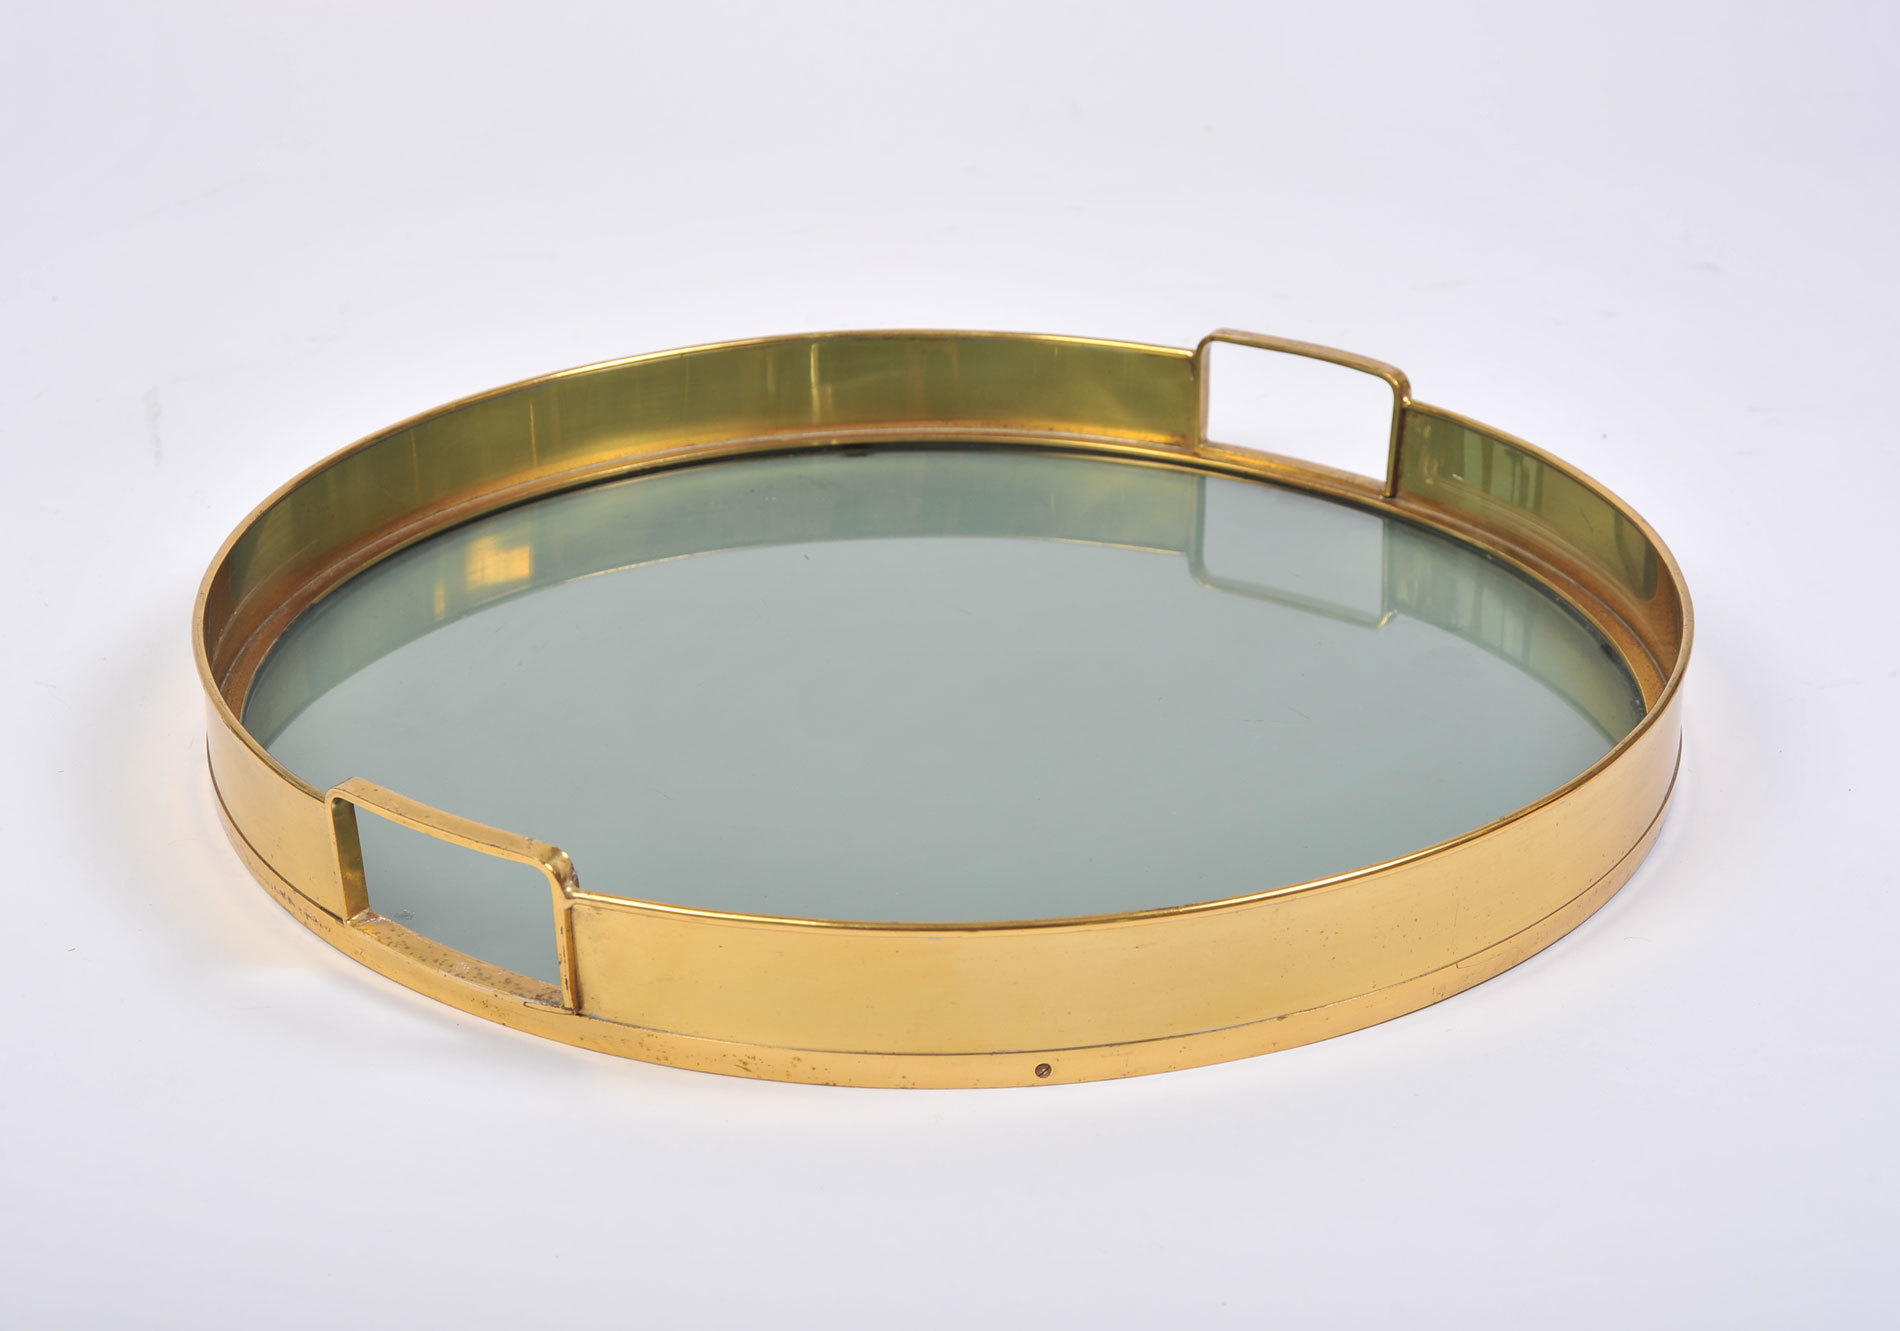 The image for Circular Brass Tray 03